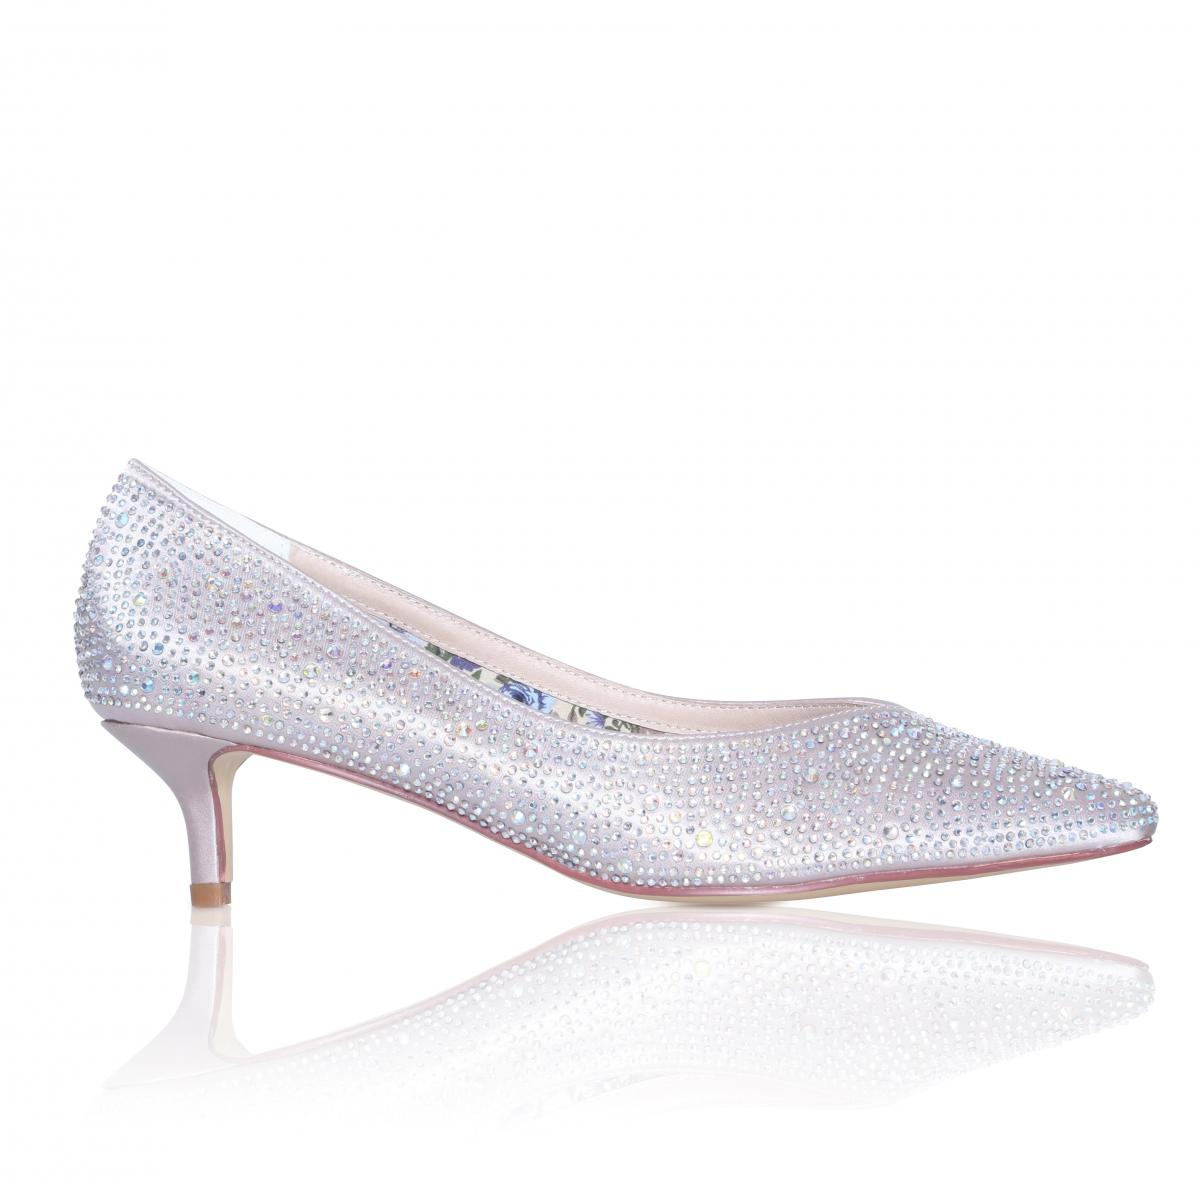 Perfect Bridal Stella Shoes - Crystal Encrusted Nude Satin